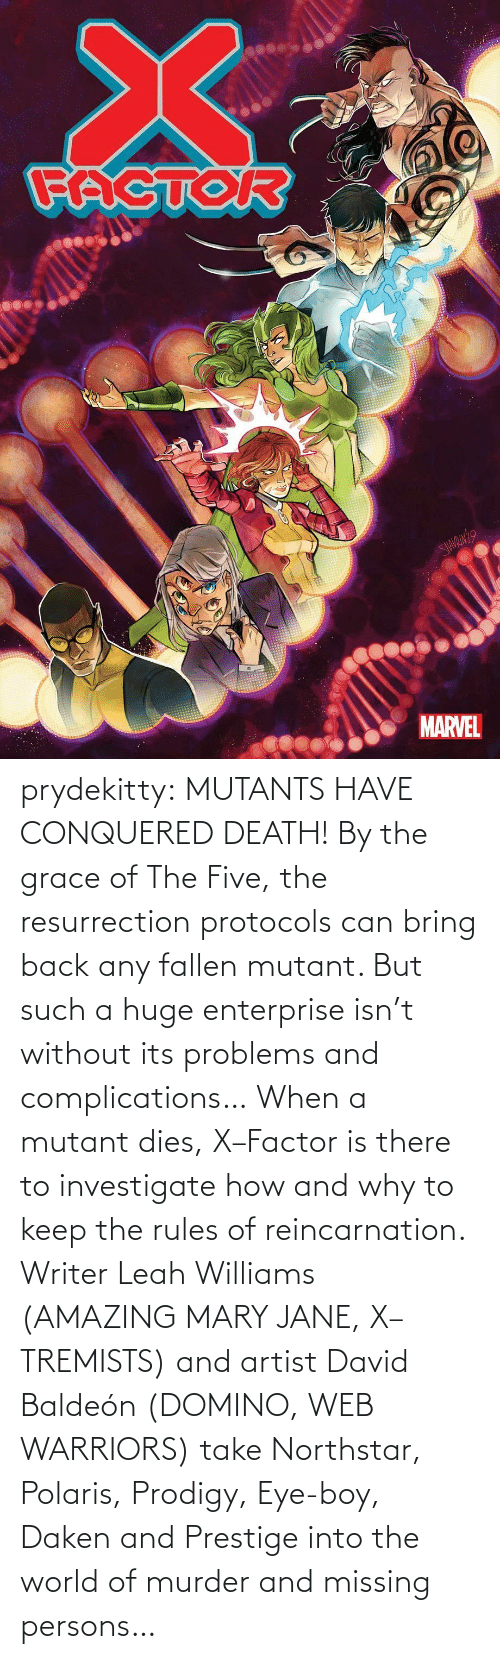 missing: prydekitty:  MUTANTS HAVE CONQUERED DEATH! By the grace of The Five, the resurrection protocols can bring back any fallen mutant. But such a huge enterprise isn't without its problems and complications… When a mutant dies, X–Factor is there to investigate how and why to keep the rules of reincarnation. Writer Leah Williams (AMAZING MARY JANE, X–TREMISTS) and artist David Baldeón (DOMINO, WEB WARRIORS) take Northstar, Polaris, Prodigy, Eye-boy, Daken and Prestige into the world of murder and missing persons…